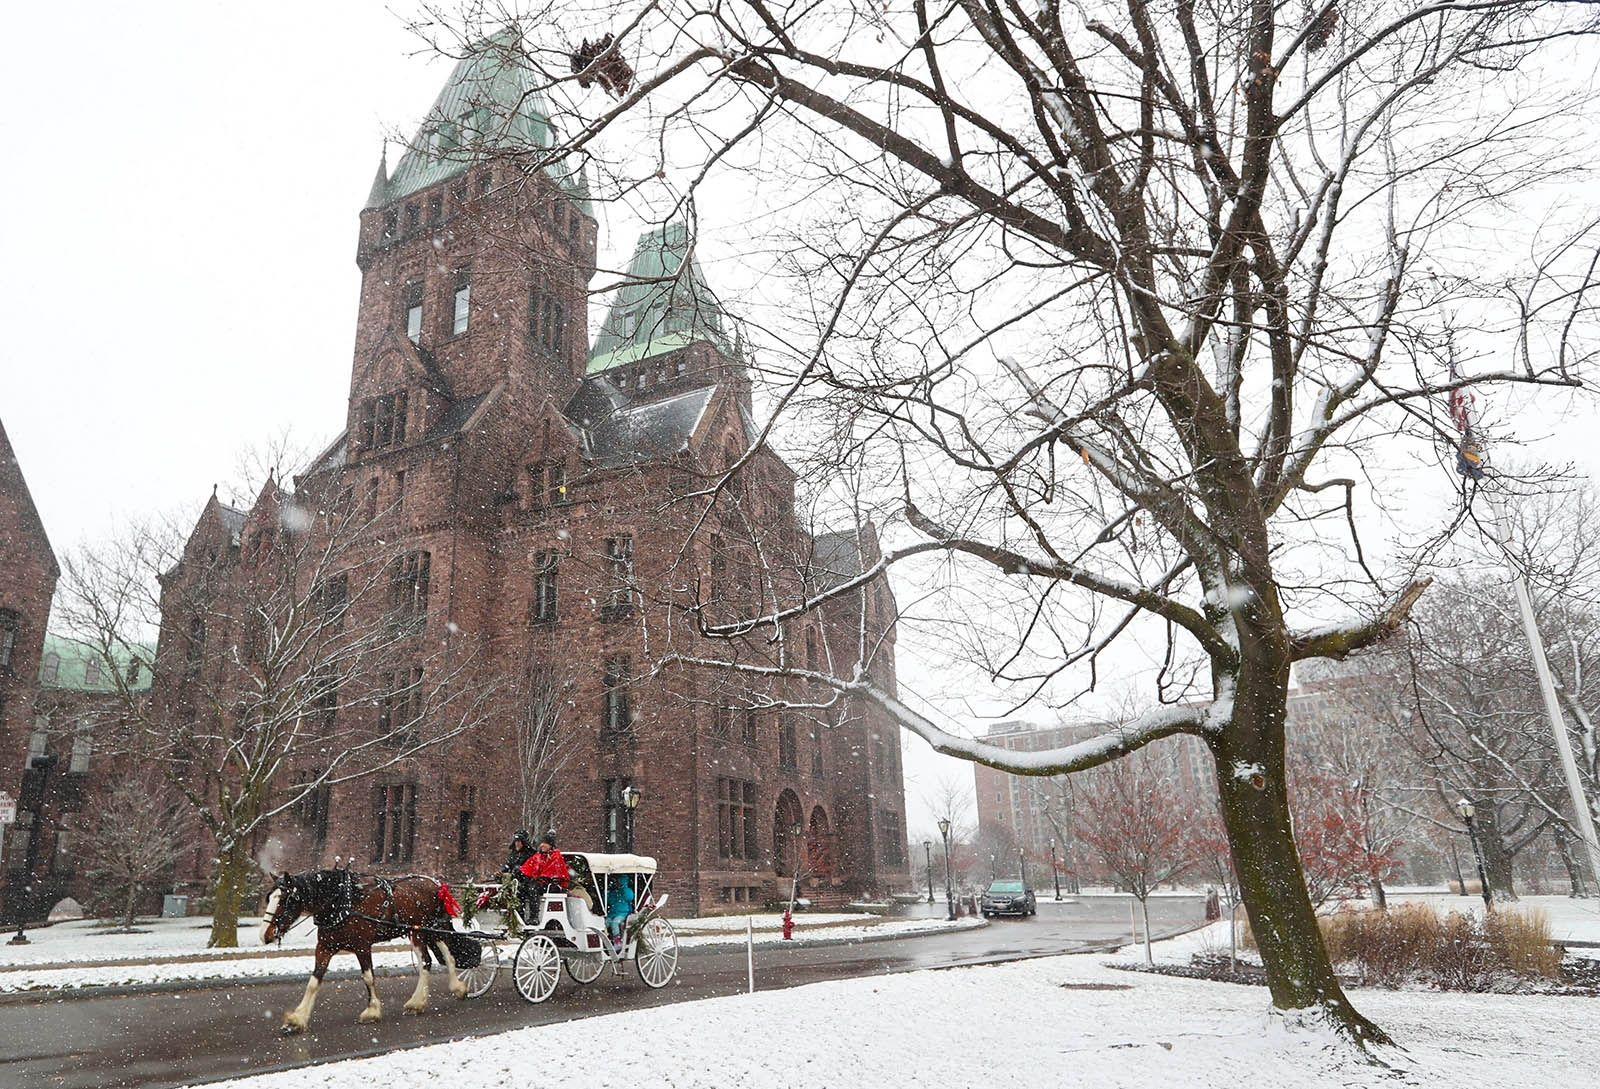 Day 364: Dec. 30, 2018 - A horse-drawn carriage from Banner Farm in Perrysburg takes guests on rides at Hotel Henry on the Richardson Olmsted Campus.